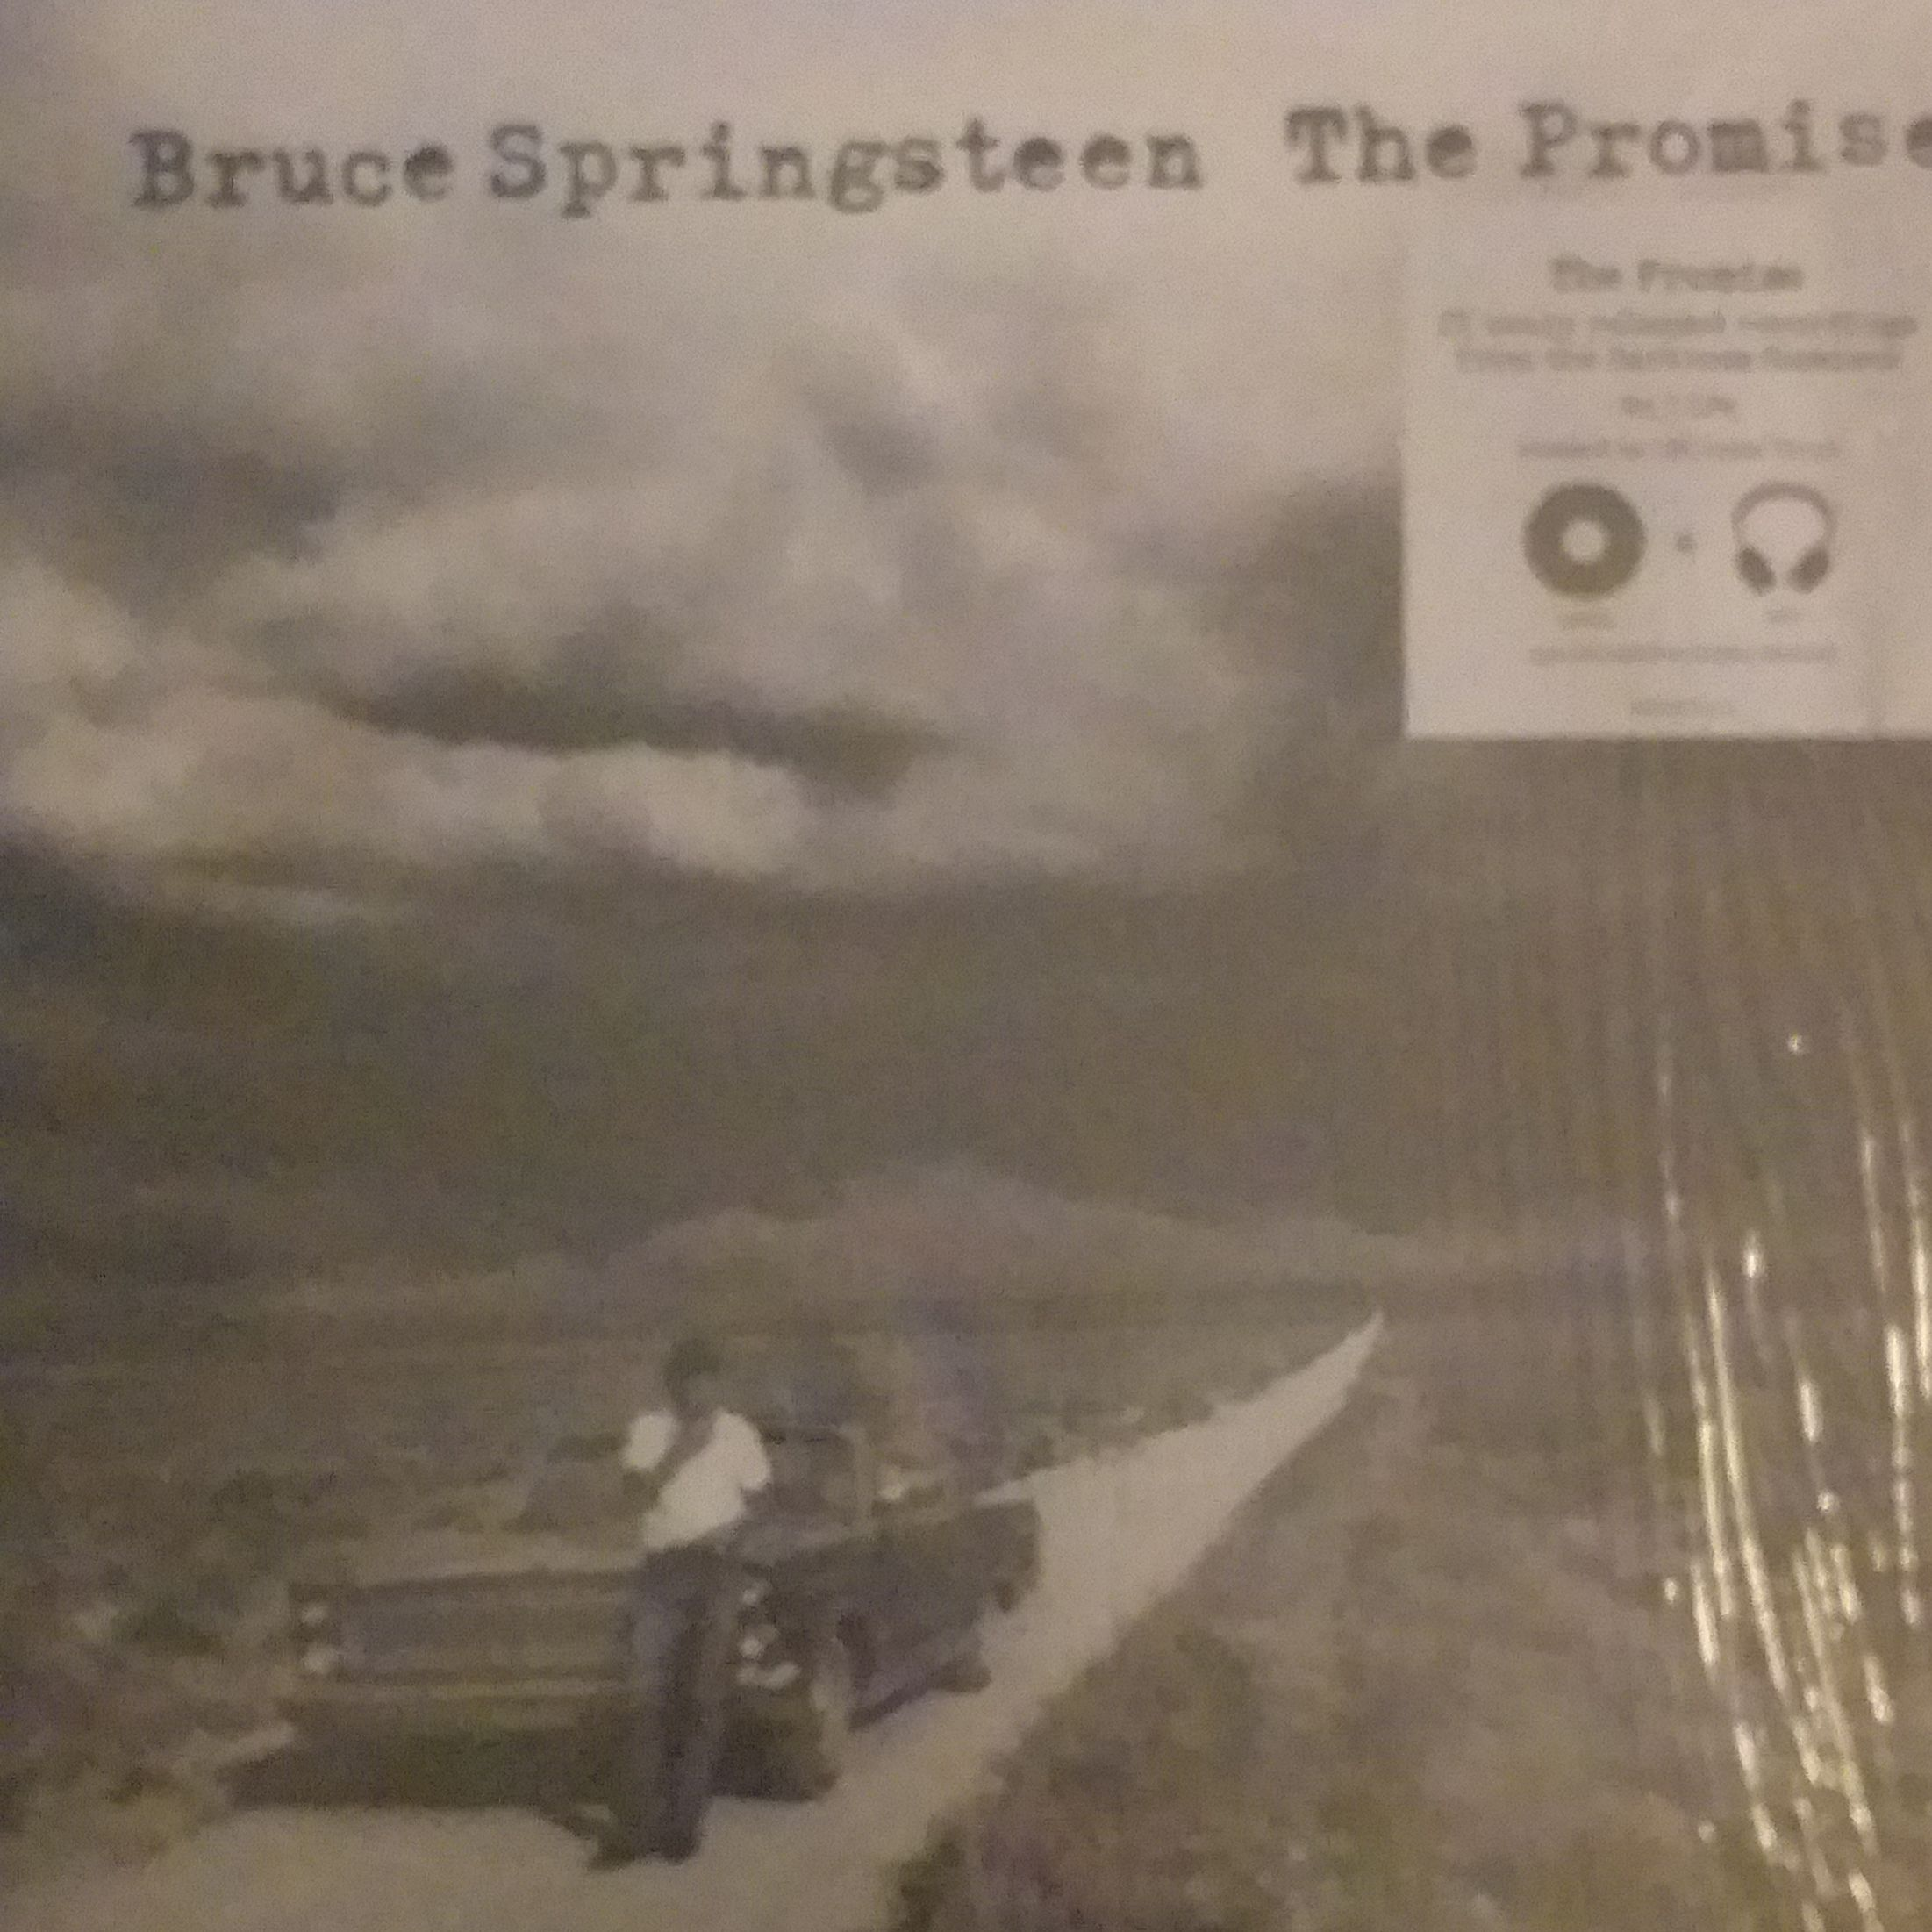 Bruce Springsteen  The promise LP undefined